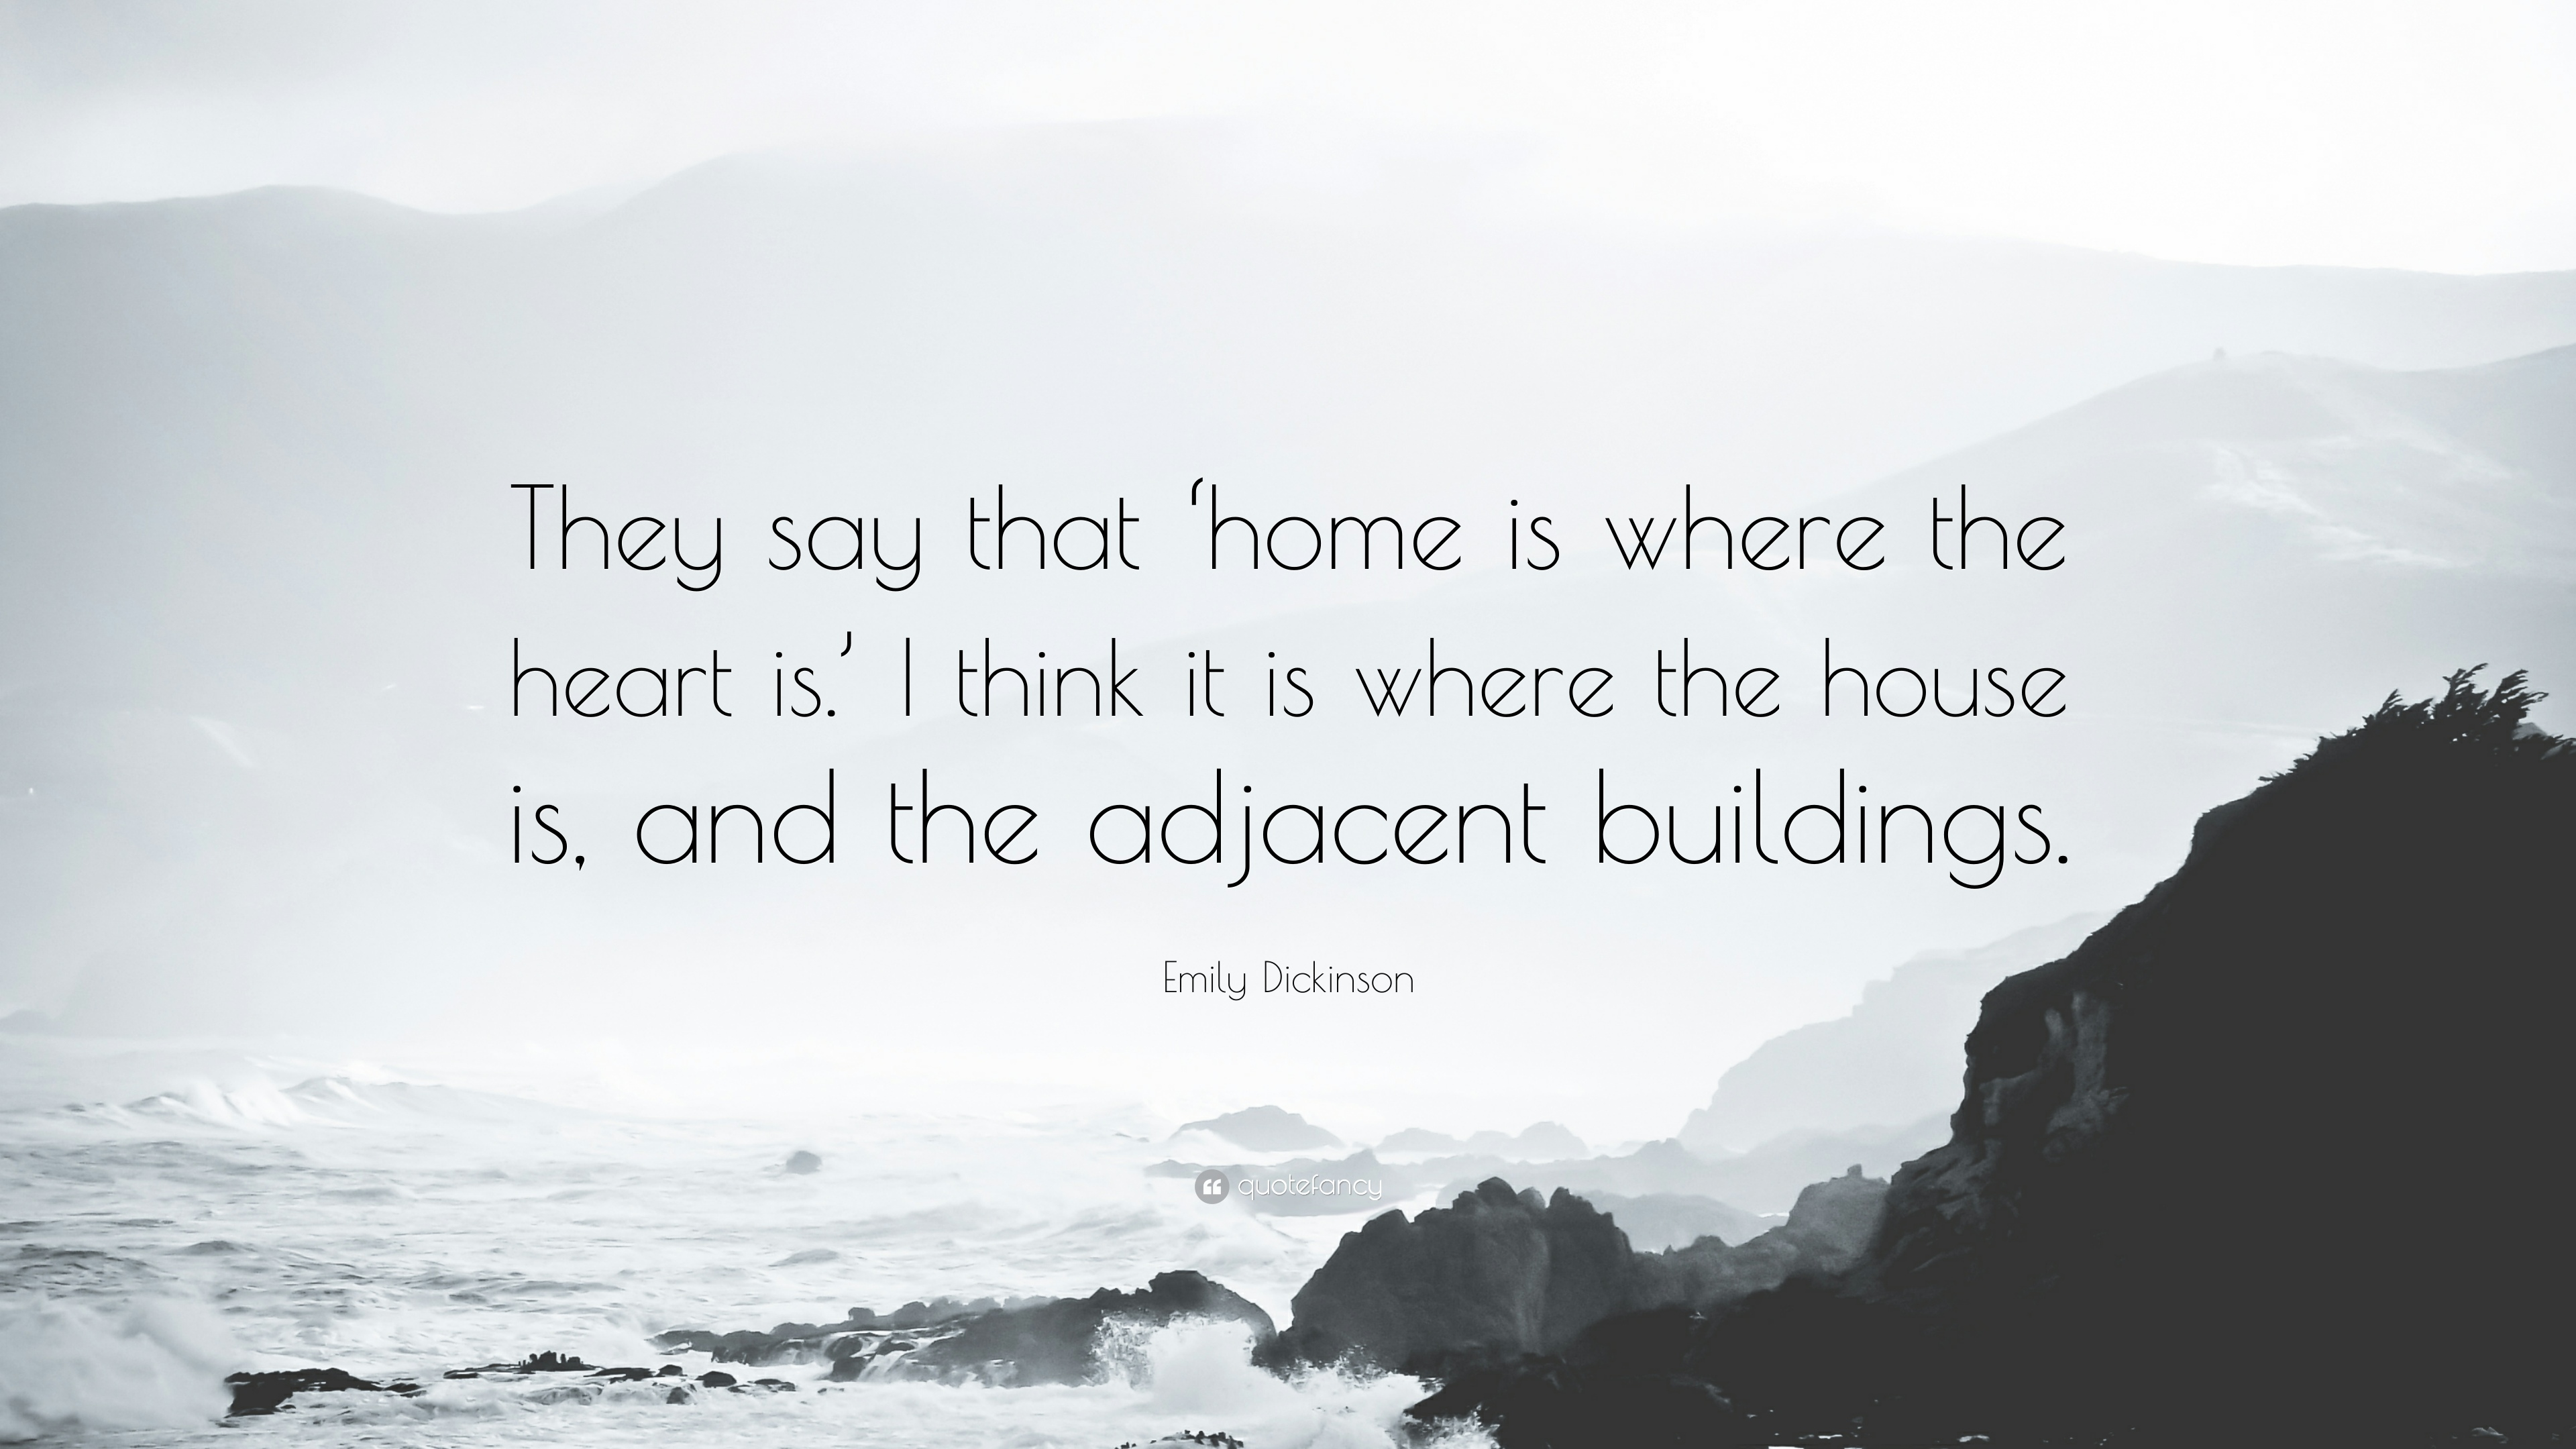 Emily Dickinson Quote They Say That Home Is Where The Heart Is I Think It Is Where The House Is And The Adjacent Buildings 7 Wallpapers Quotefancy